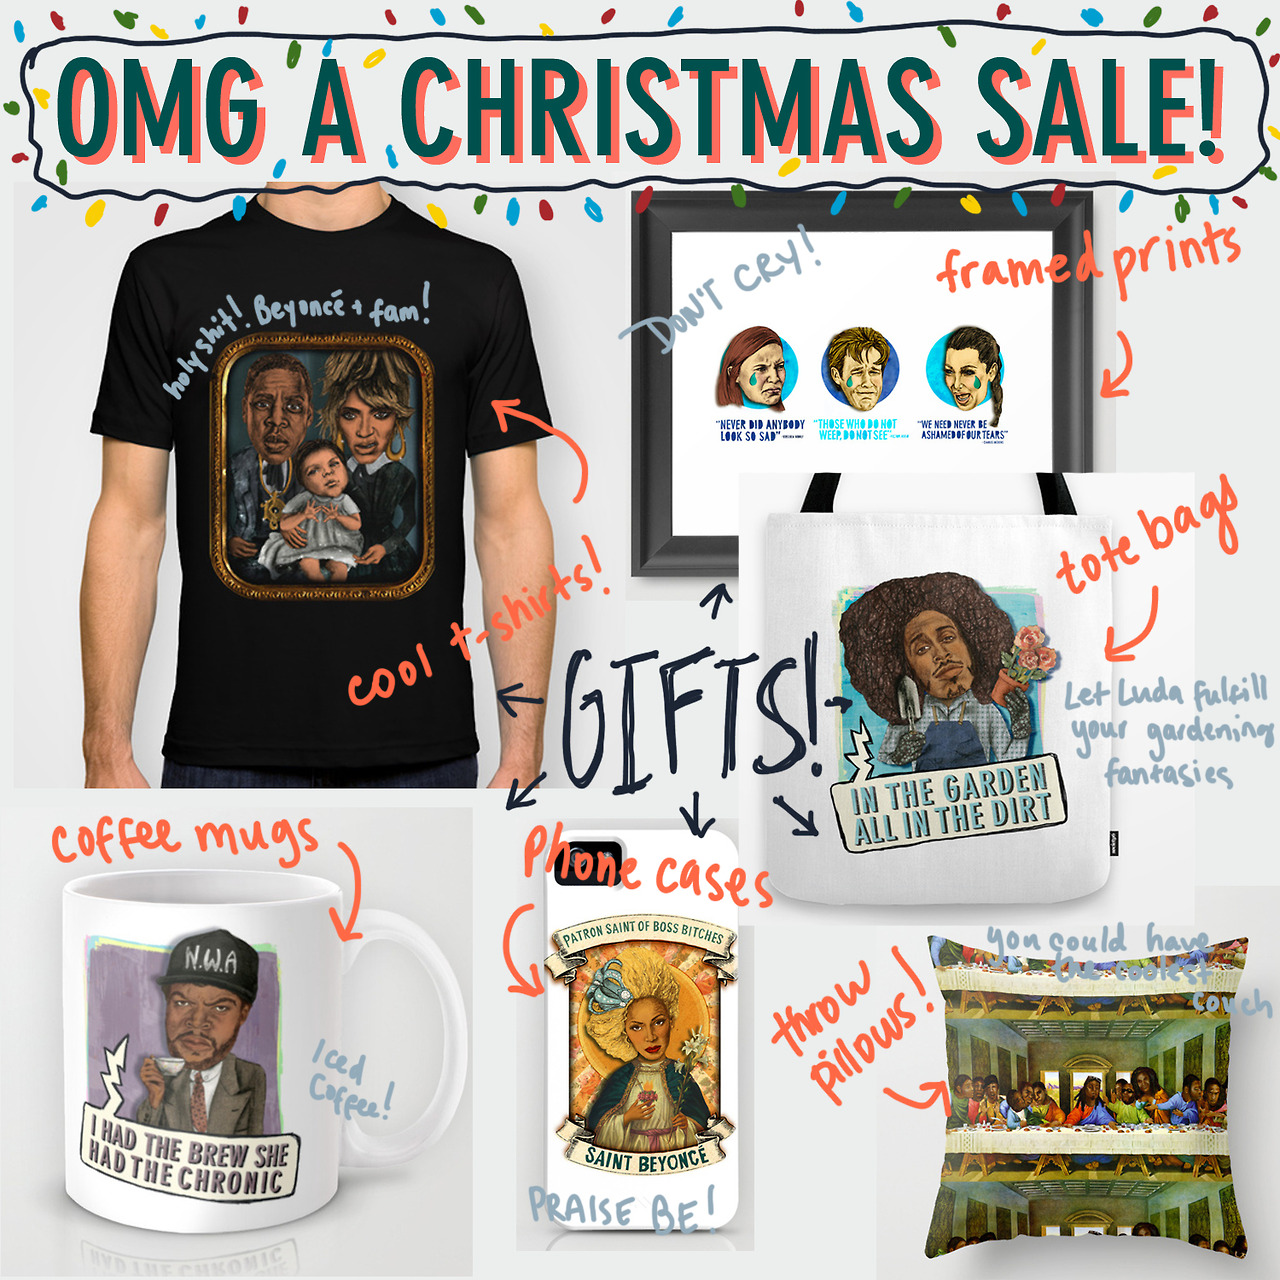 It is Christmas (nearly). You need presents. Why not buy the fruits of my labor for all your loved ones! We got pillows, shirts, phone cases, tote bags, and mugs with my drawings printed all over them! Show your mom you care this year with a Ludacris gardening tote! Remember the reason for the season is gifts!